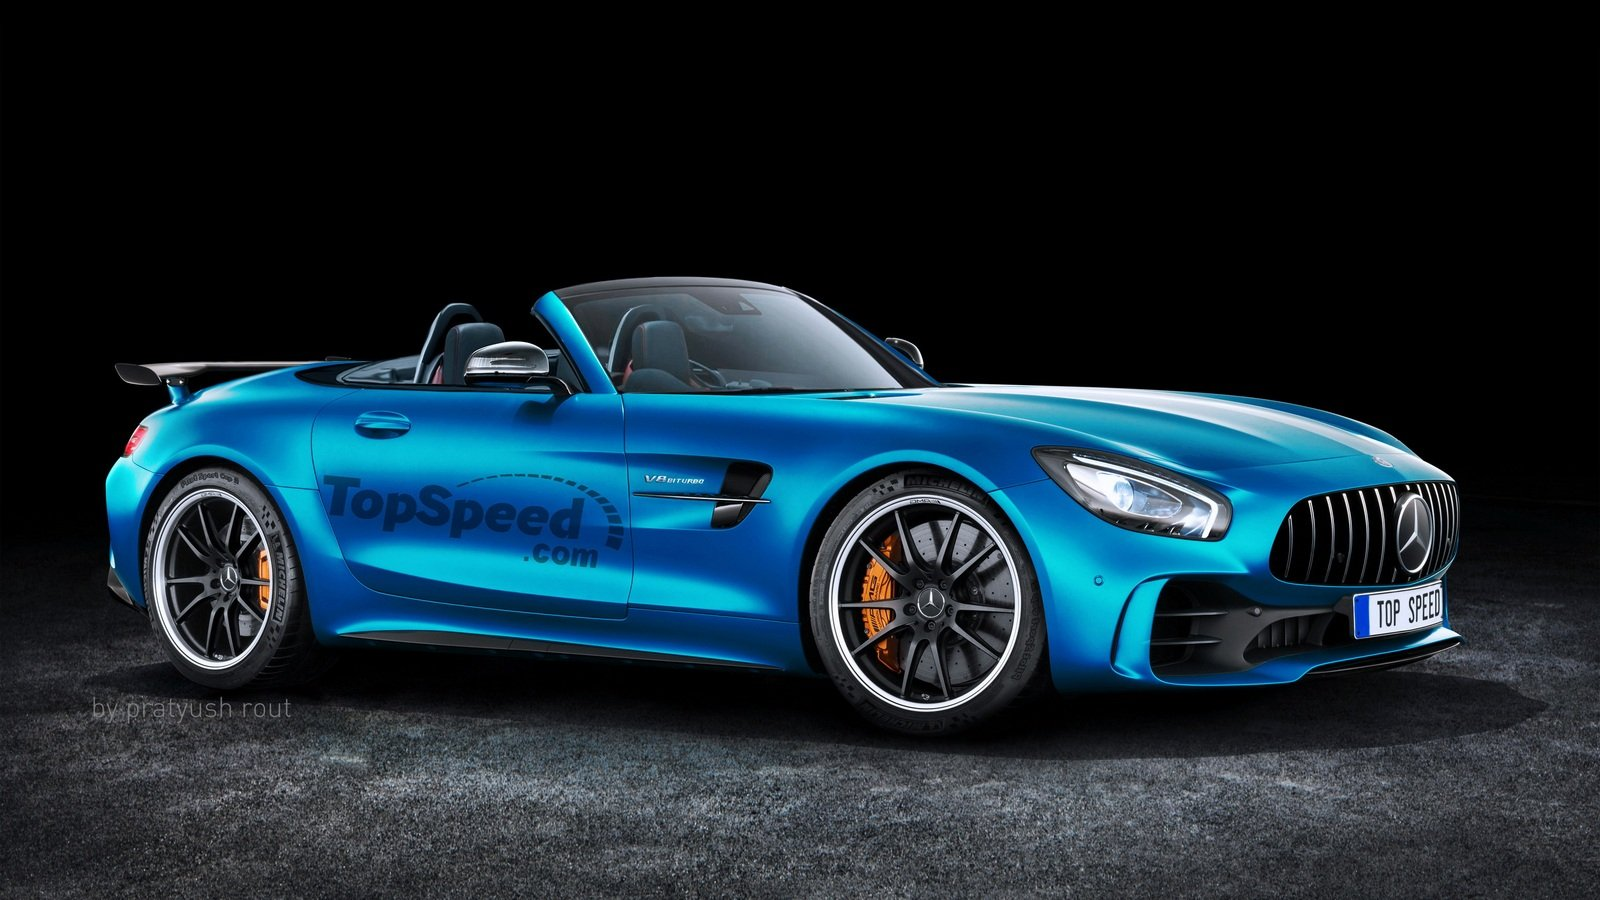 2019 mercedes amg gt r roadster review top speed. Black Bedroom Furniture Sets. Home Design Ideas